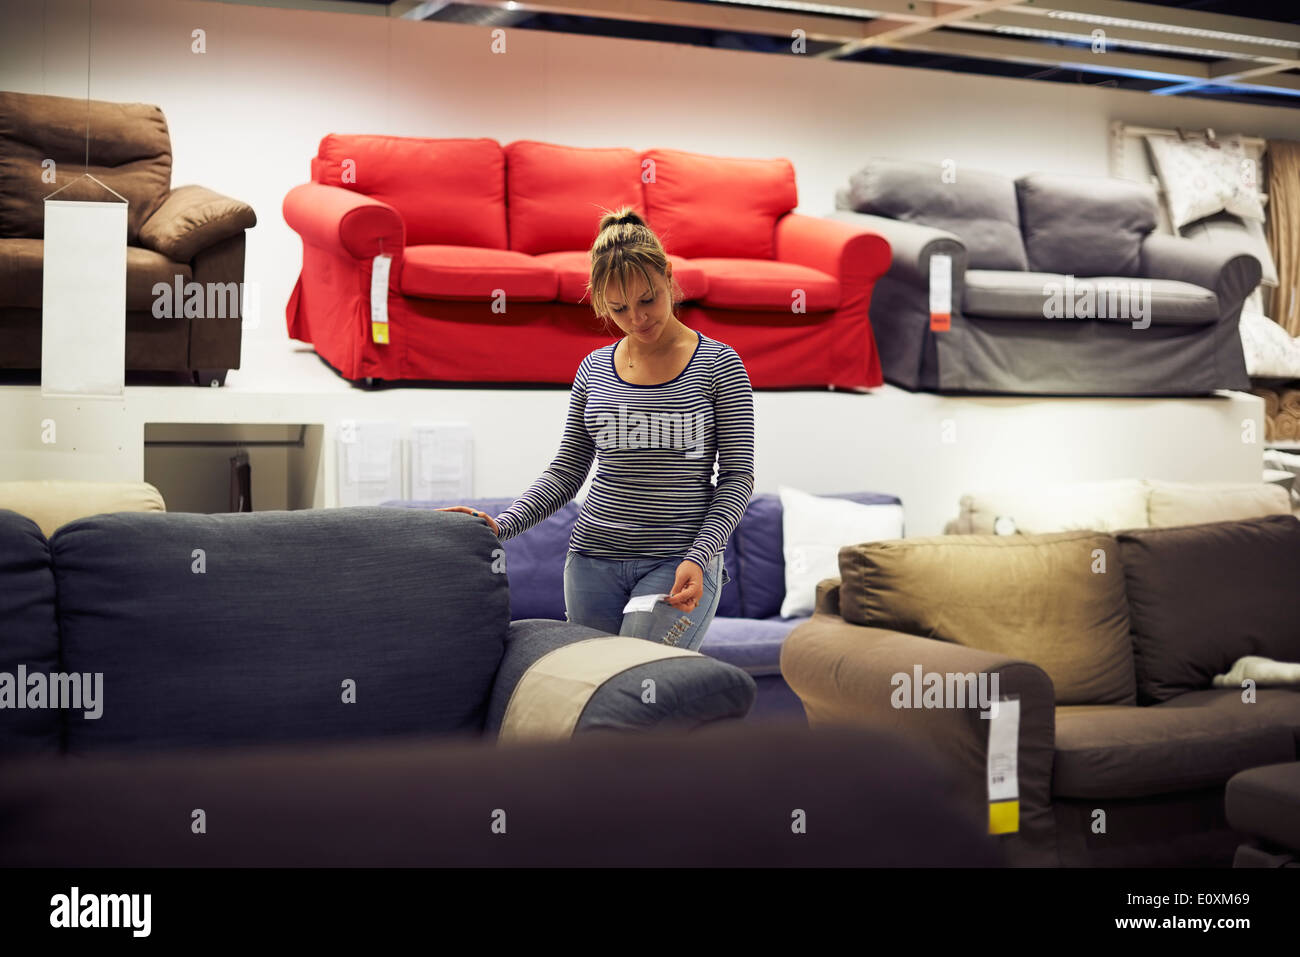 young hispanic woman shopping for furniture, sofa and home decor in store - Stock Image